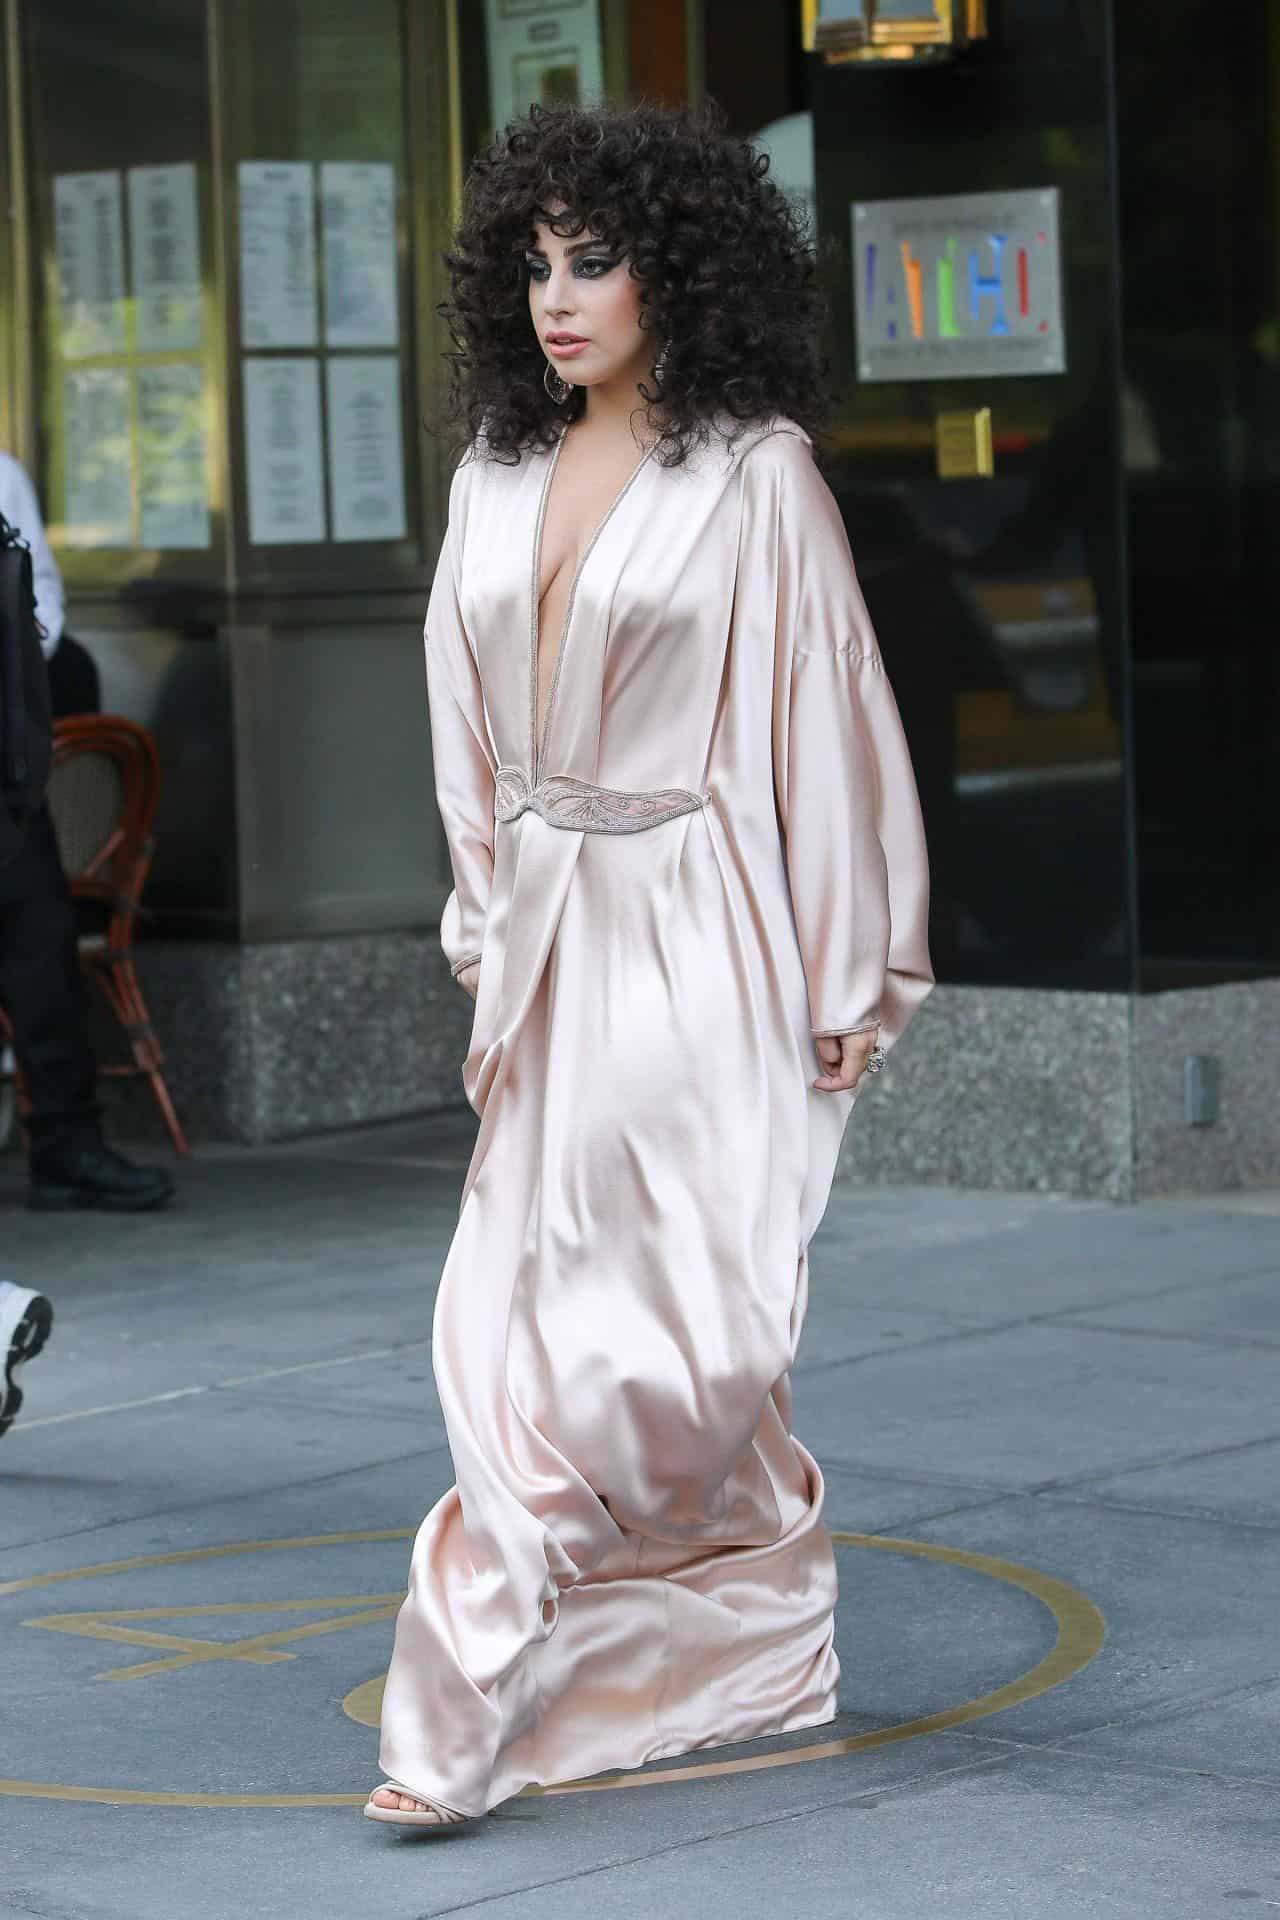 lady-gaga-in-pink-silk-dressing-gown-leaves-her-apartment-in-new-york-city_6